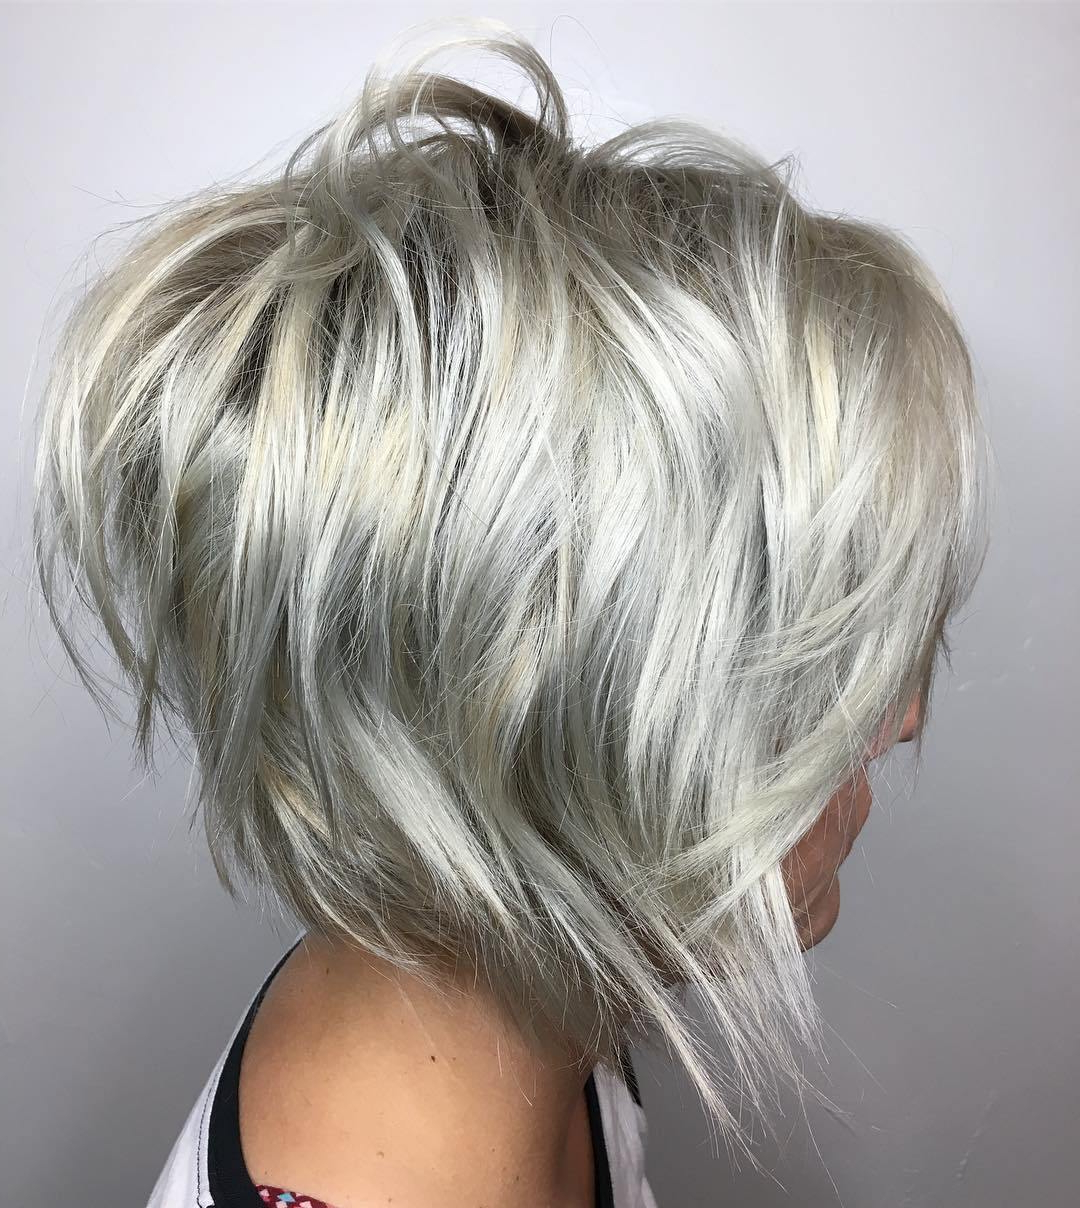 Trendy Silver Shag Haircuts With Feathered Layers With 50 Best Short Haircuts And Hairstyles For Fine Hair – Hair (View 10 of 20)